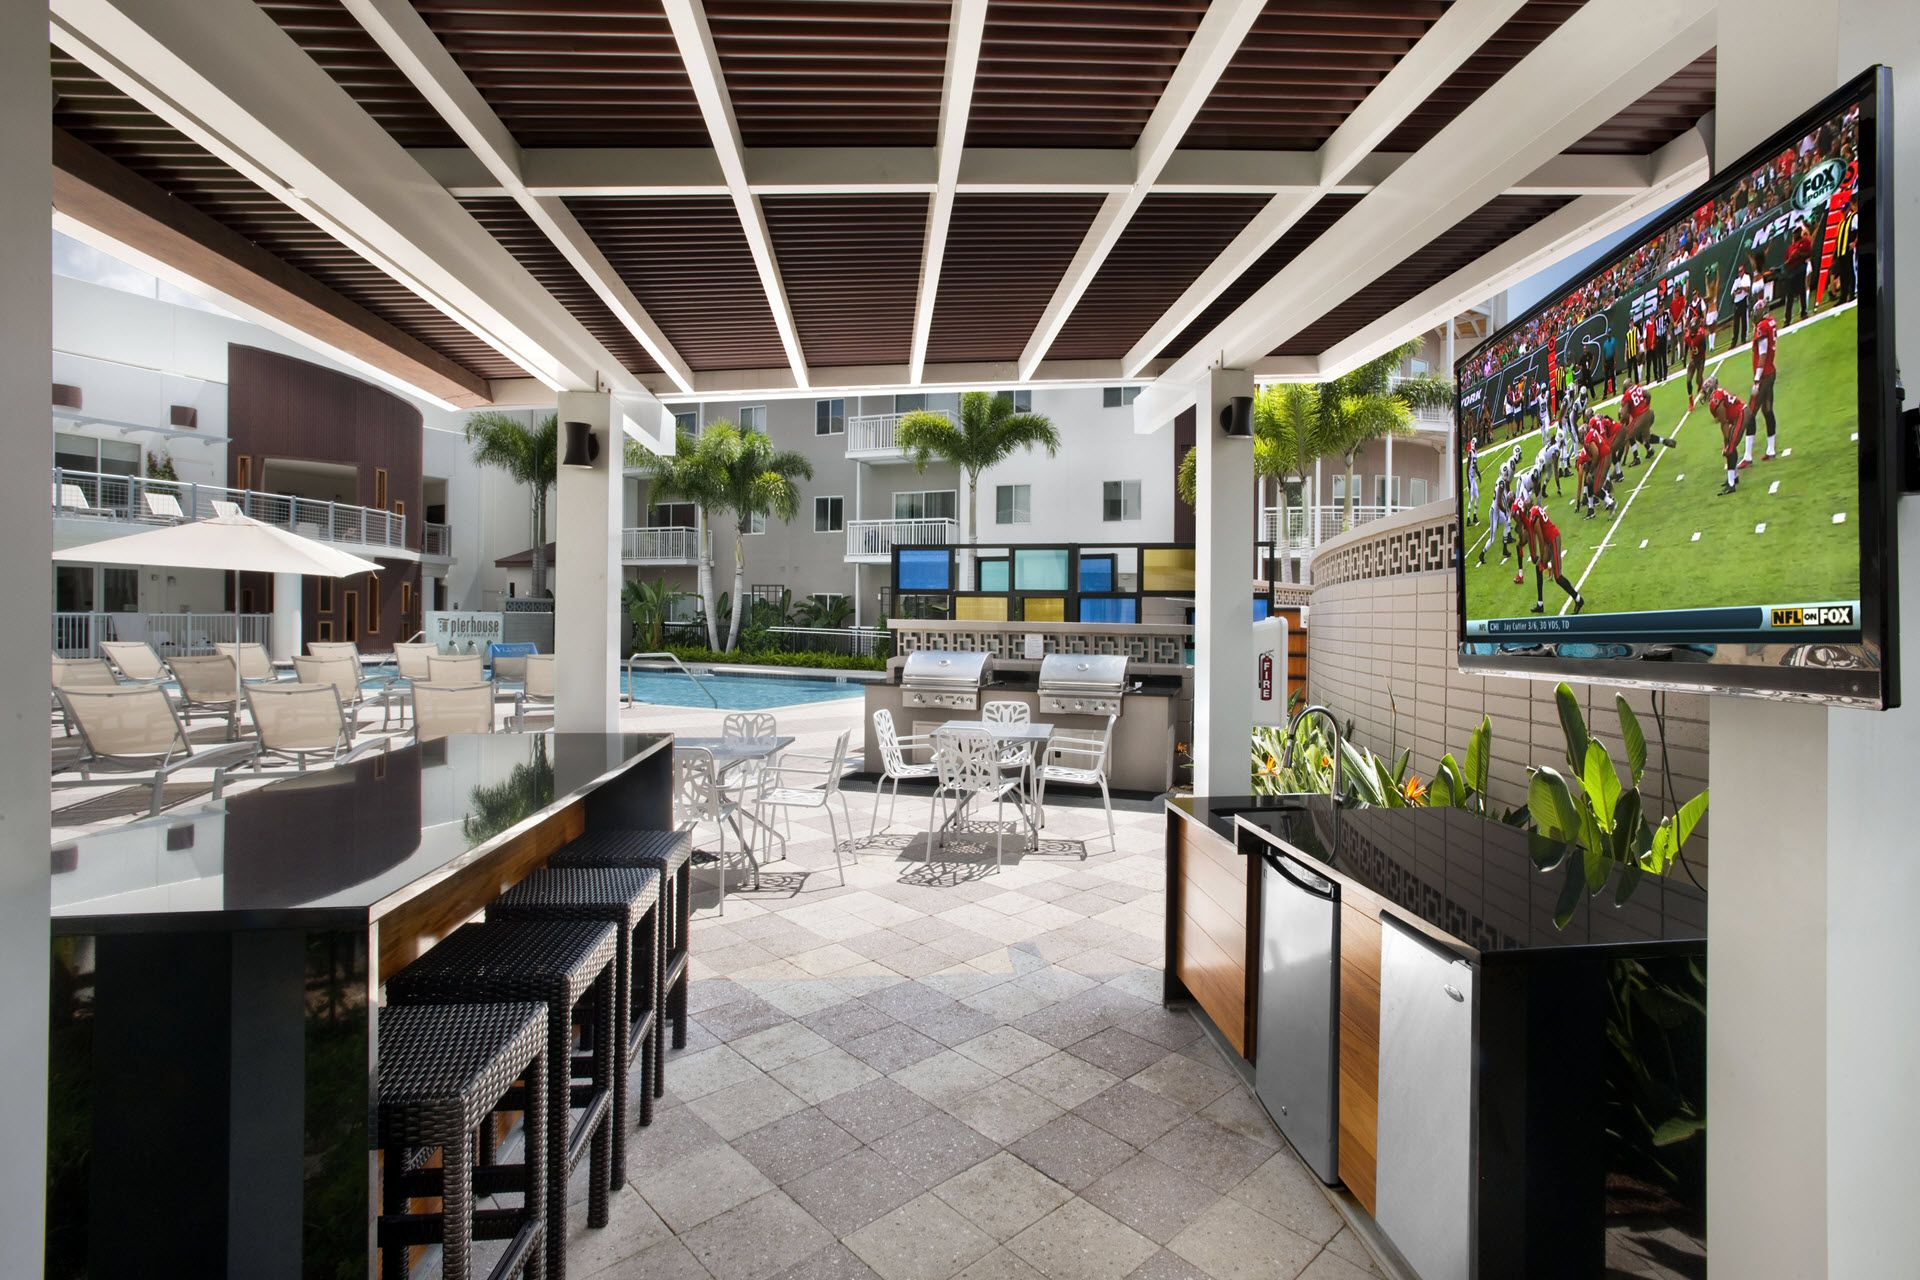 Outdoor kitchen with bar and television